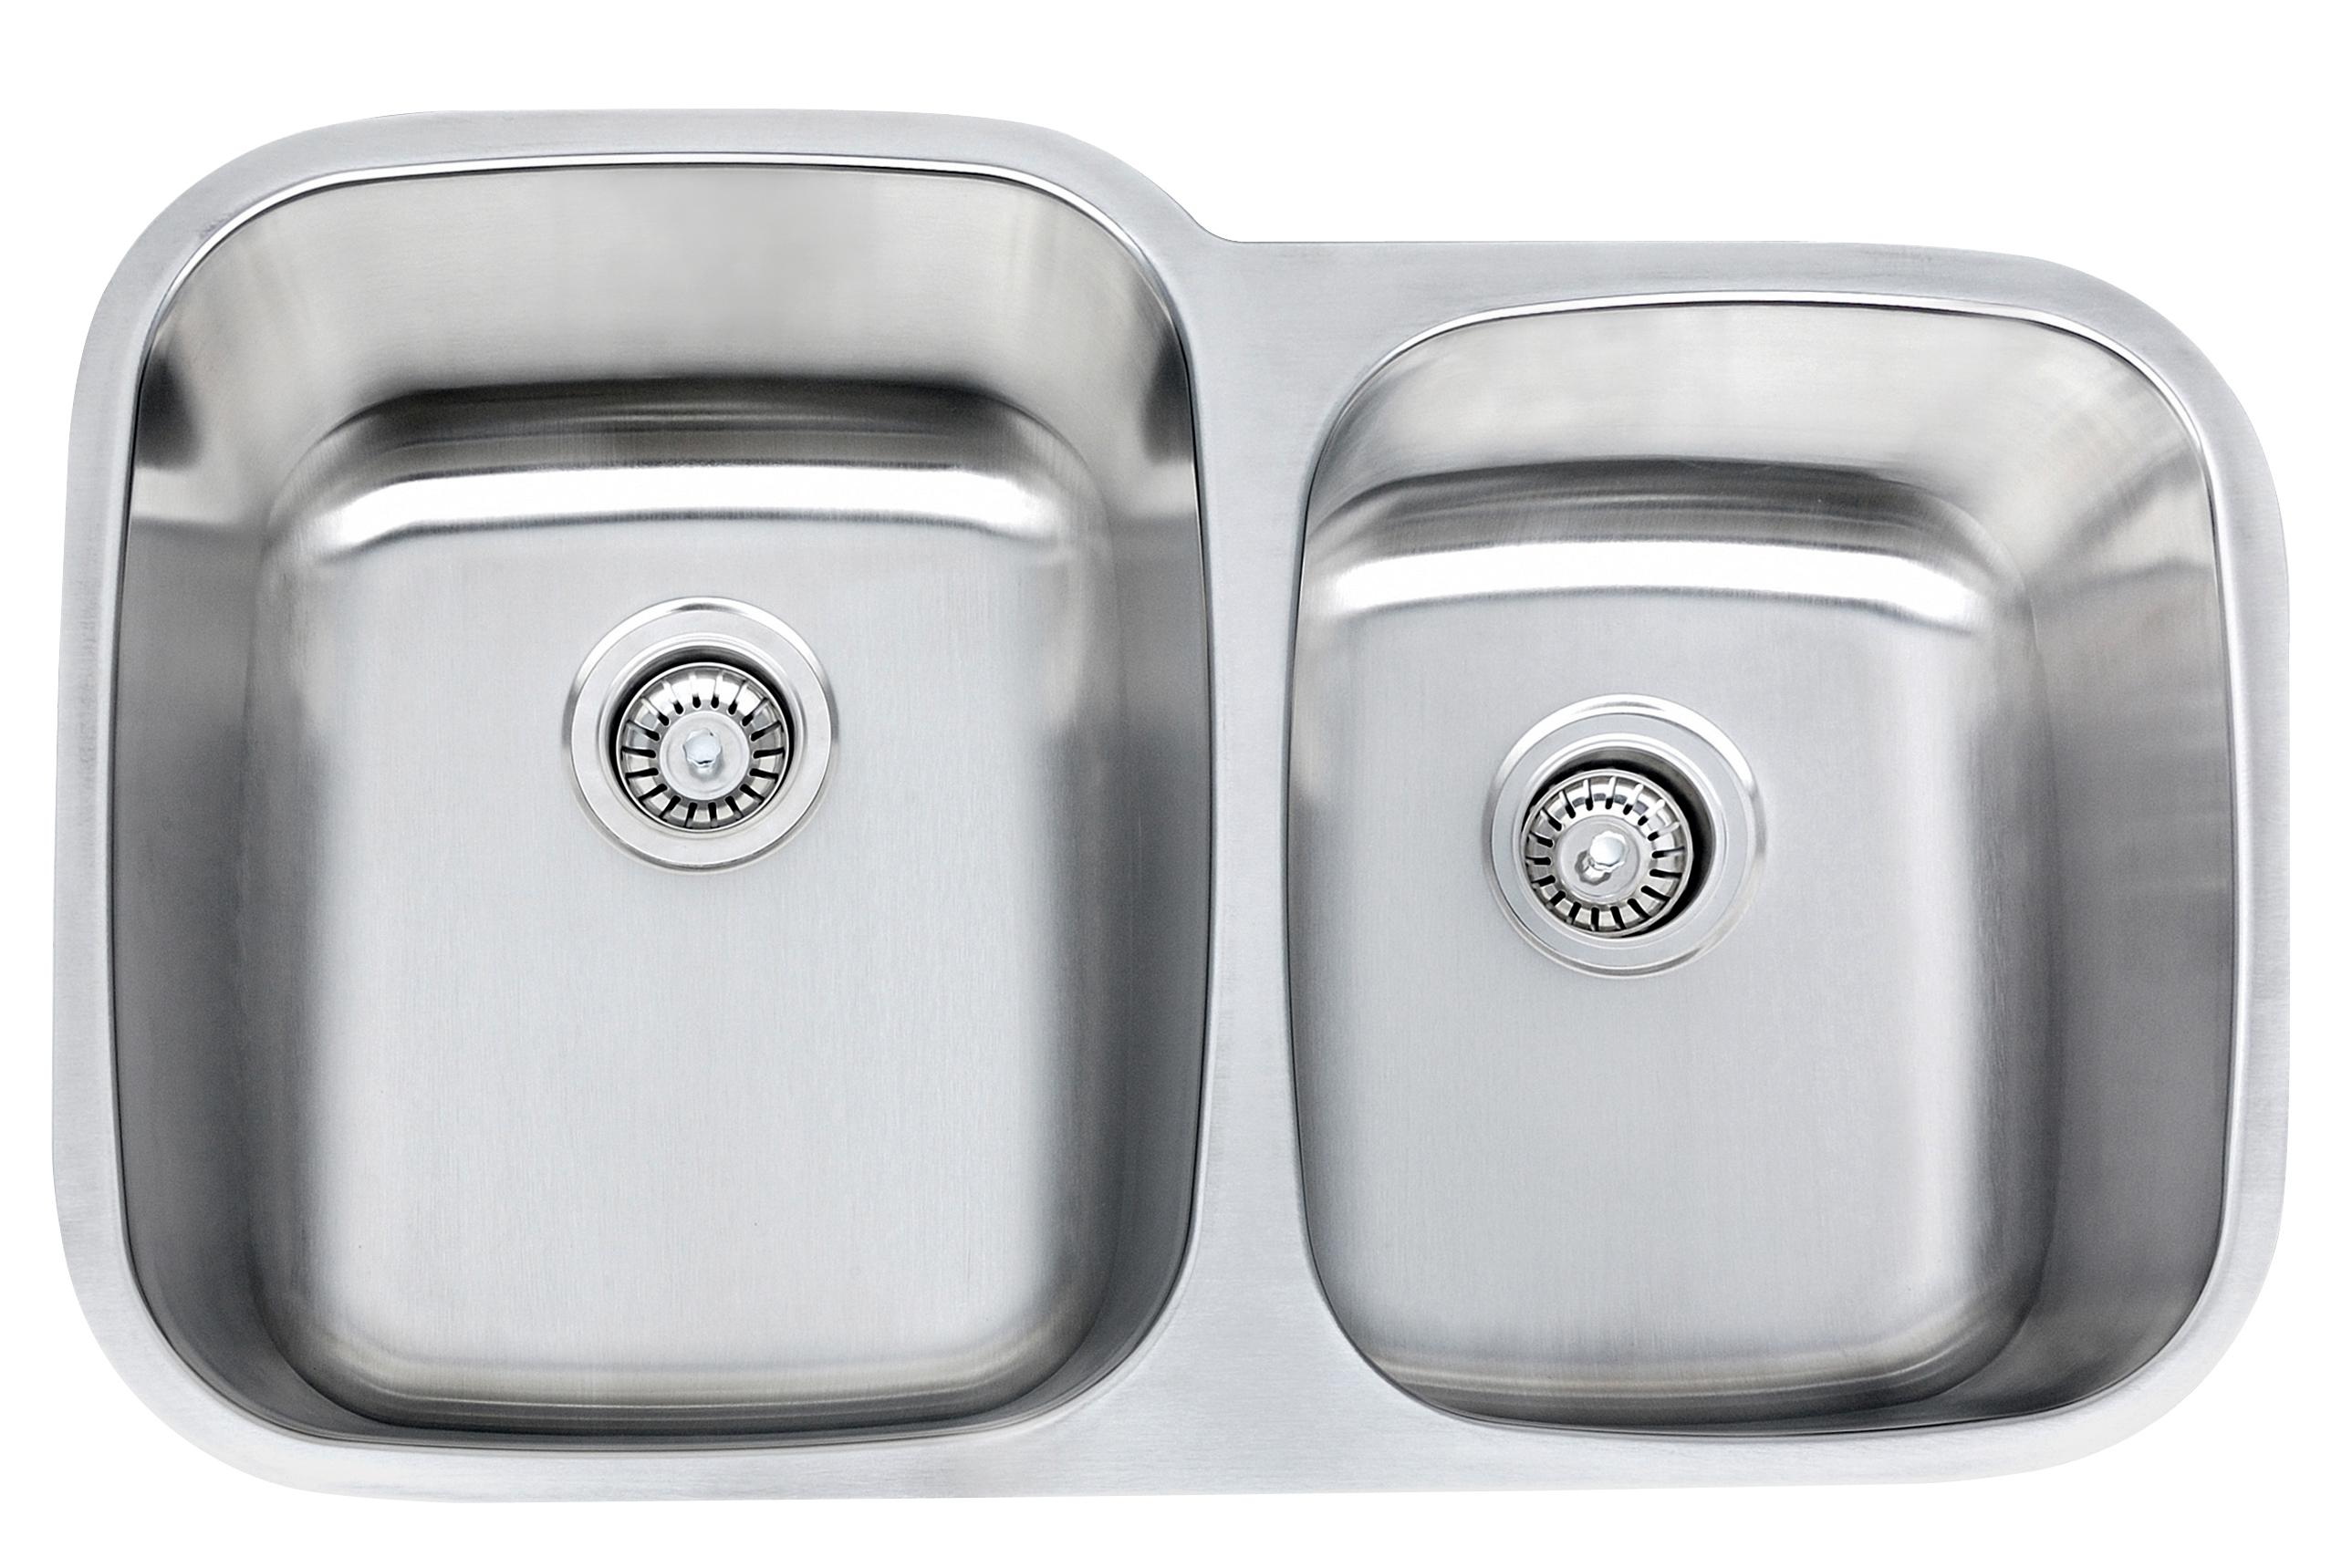 Undermount Kitchen Sink KY907 60/40 | KpaxInc